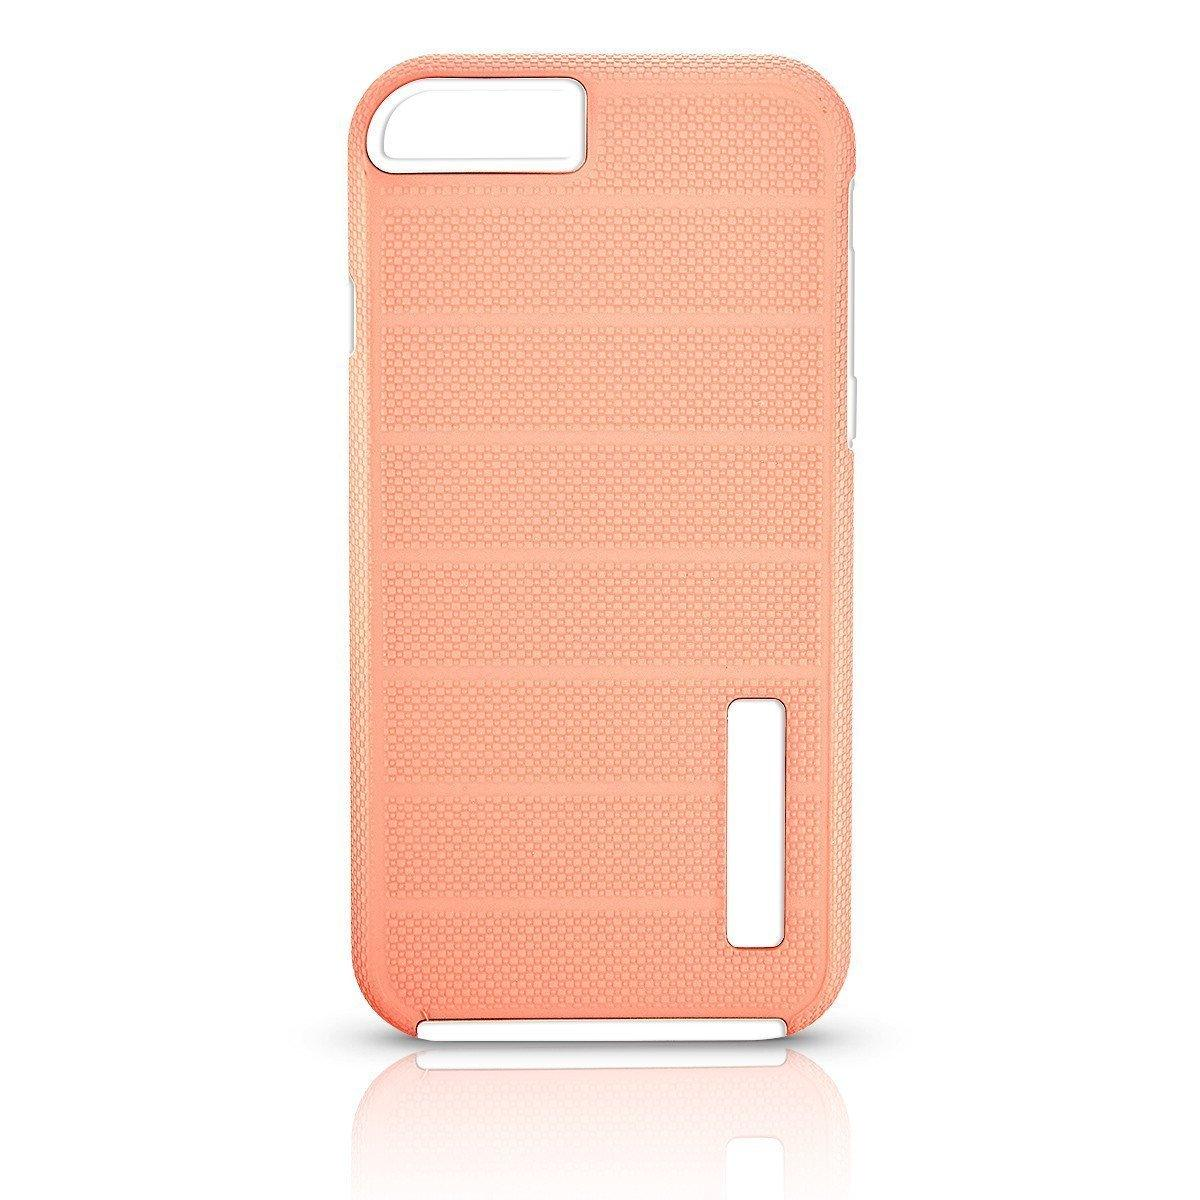 Destiny Case For I7 /8 - Rose Gold